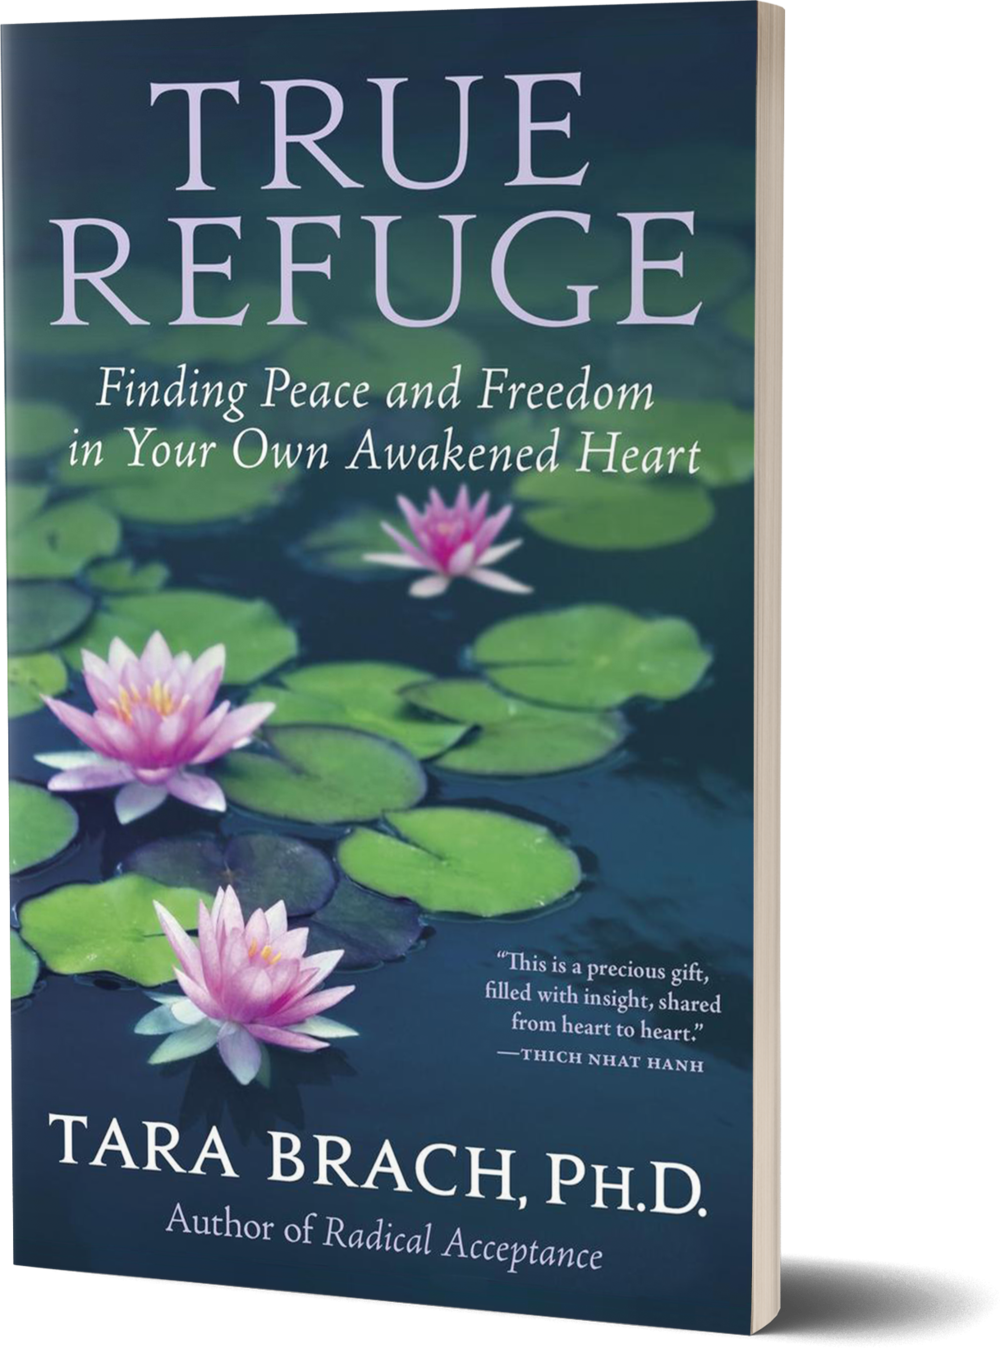 True Refuge- Finding Peace and Freedom in Your Own Awakened Heart by Tara Brach, Ph.D.png